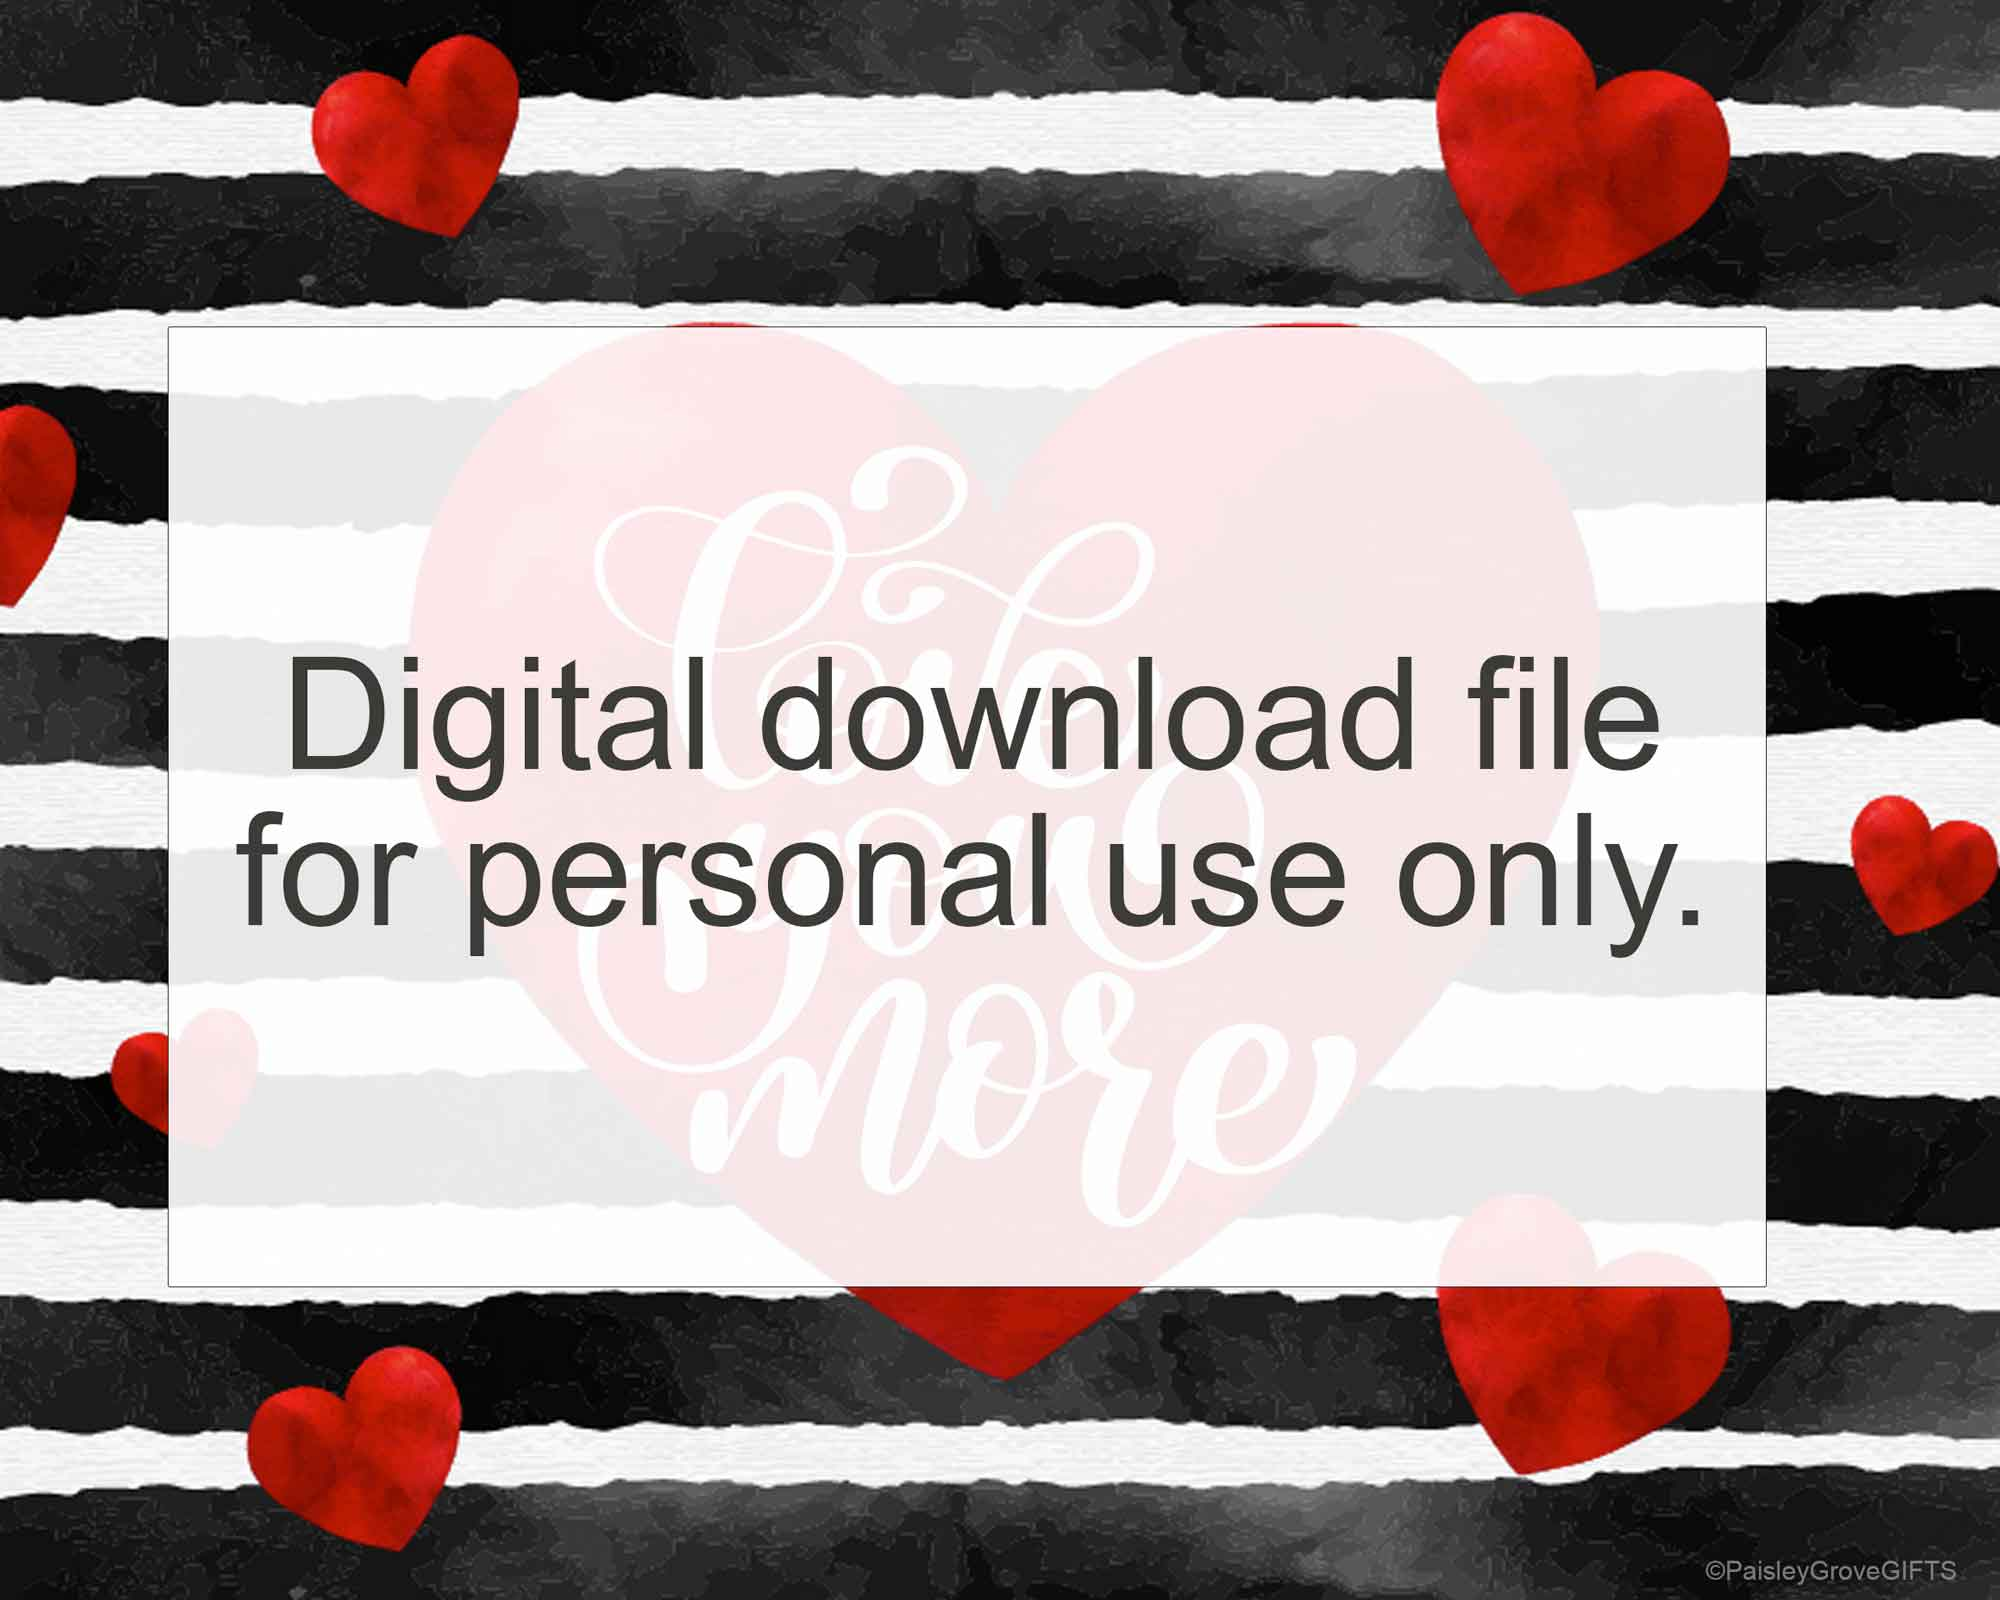 CopyrightPaisleyGroveGIFTS D005b Downloadable file only for personal use Valentines Decor I Love You Print